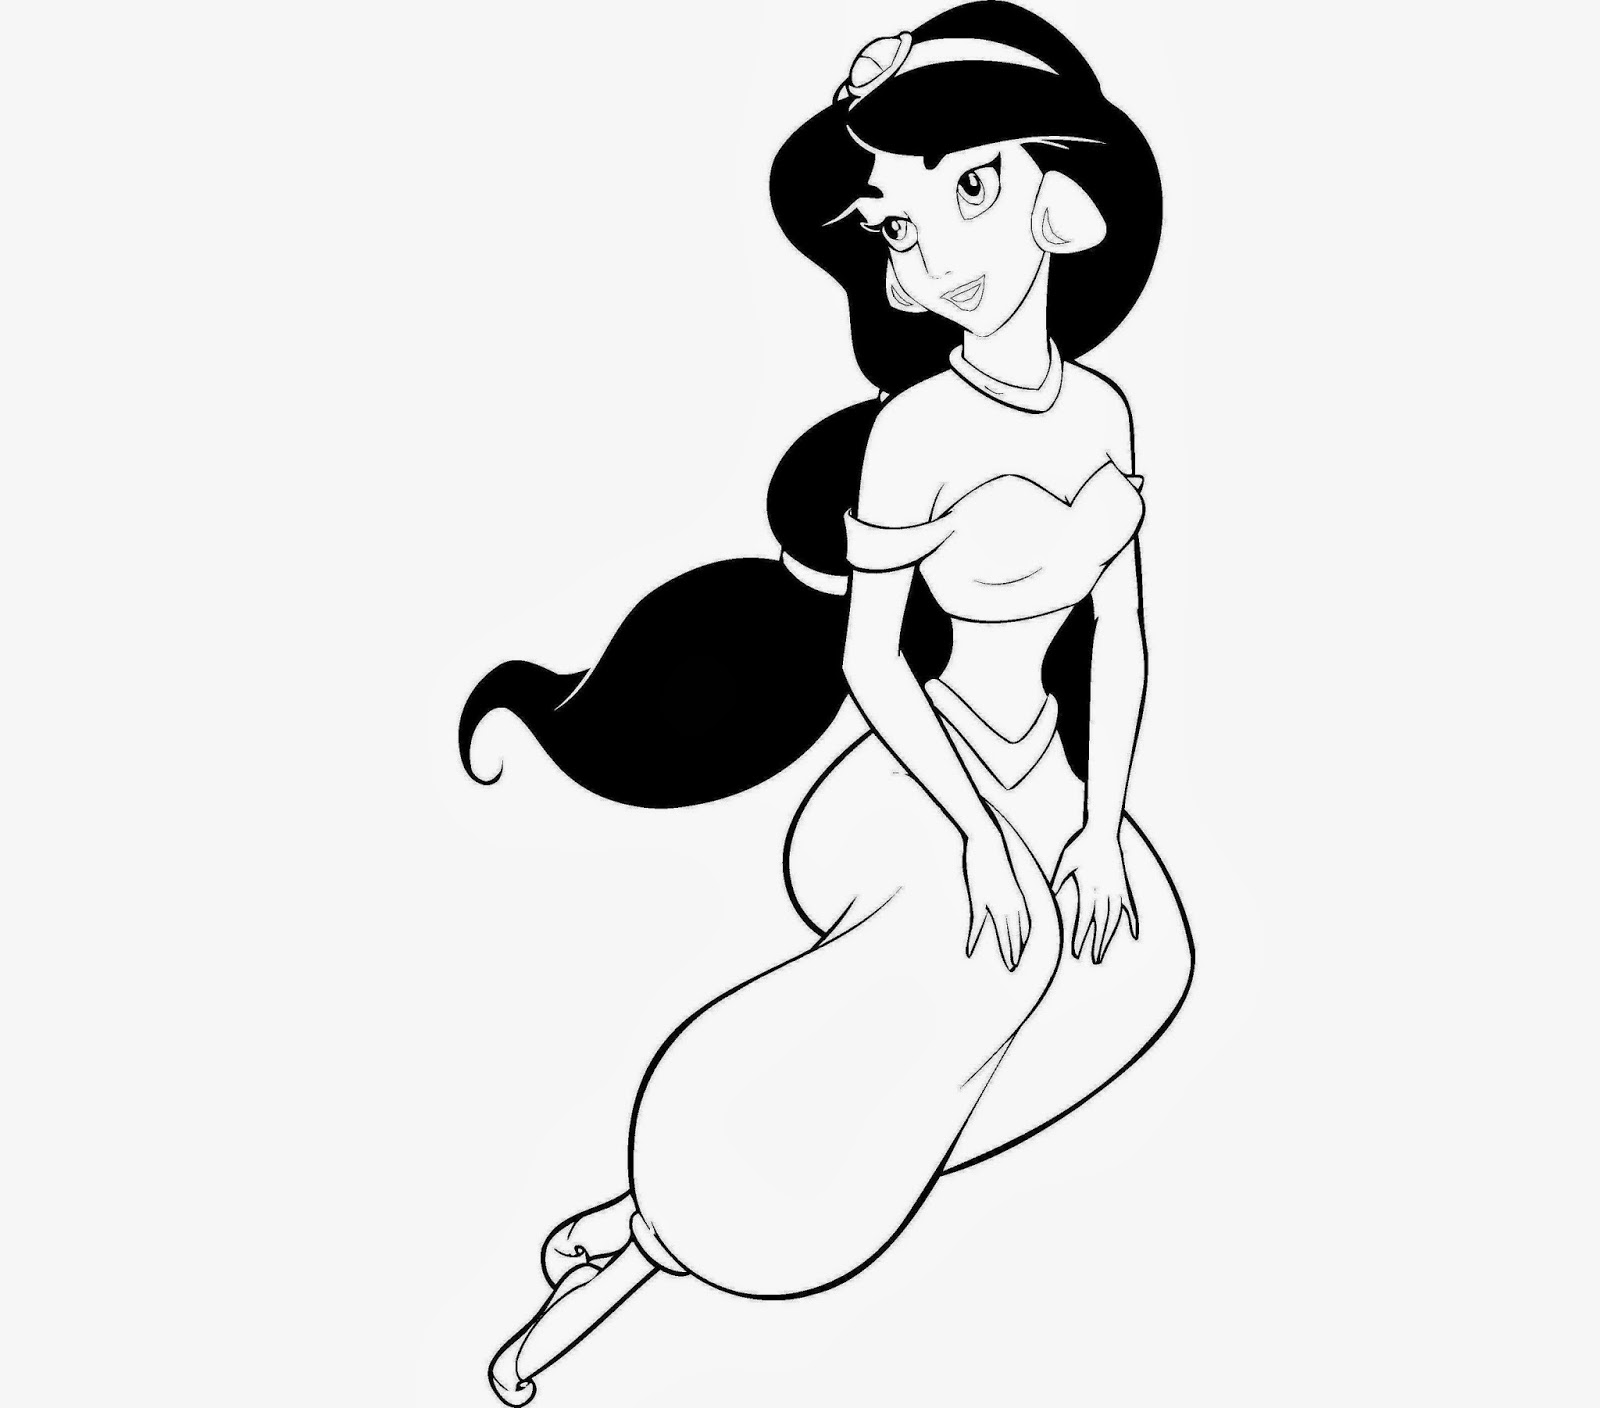 Princess jasmine colouring pages to print - Disney Jasmine Princess Coloring Drawing Free Wallpaper